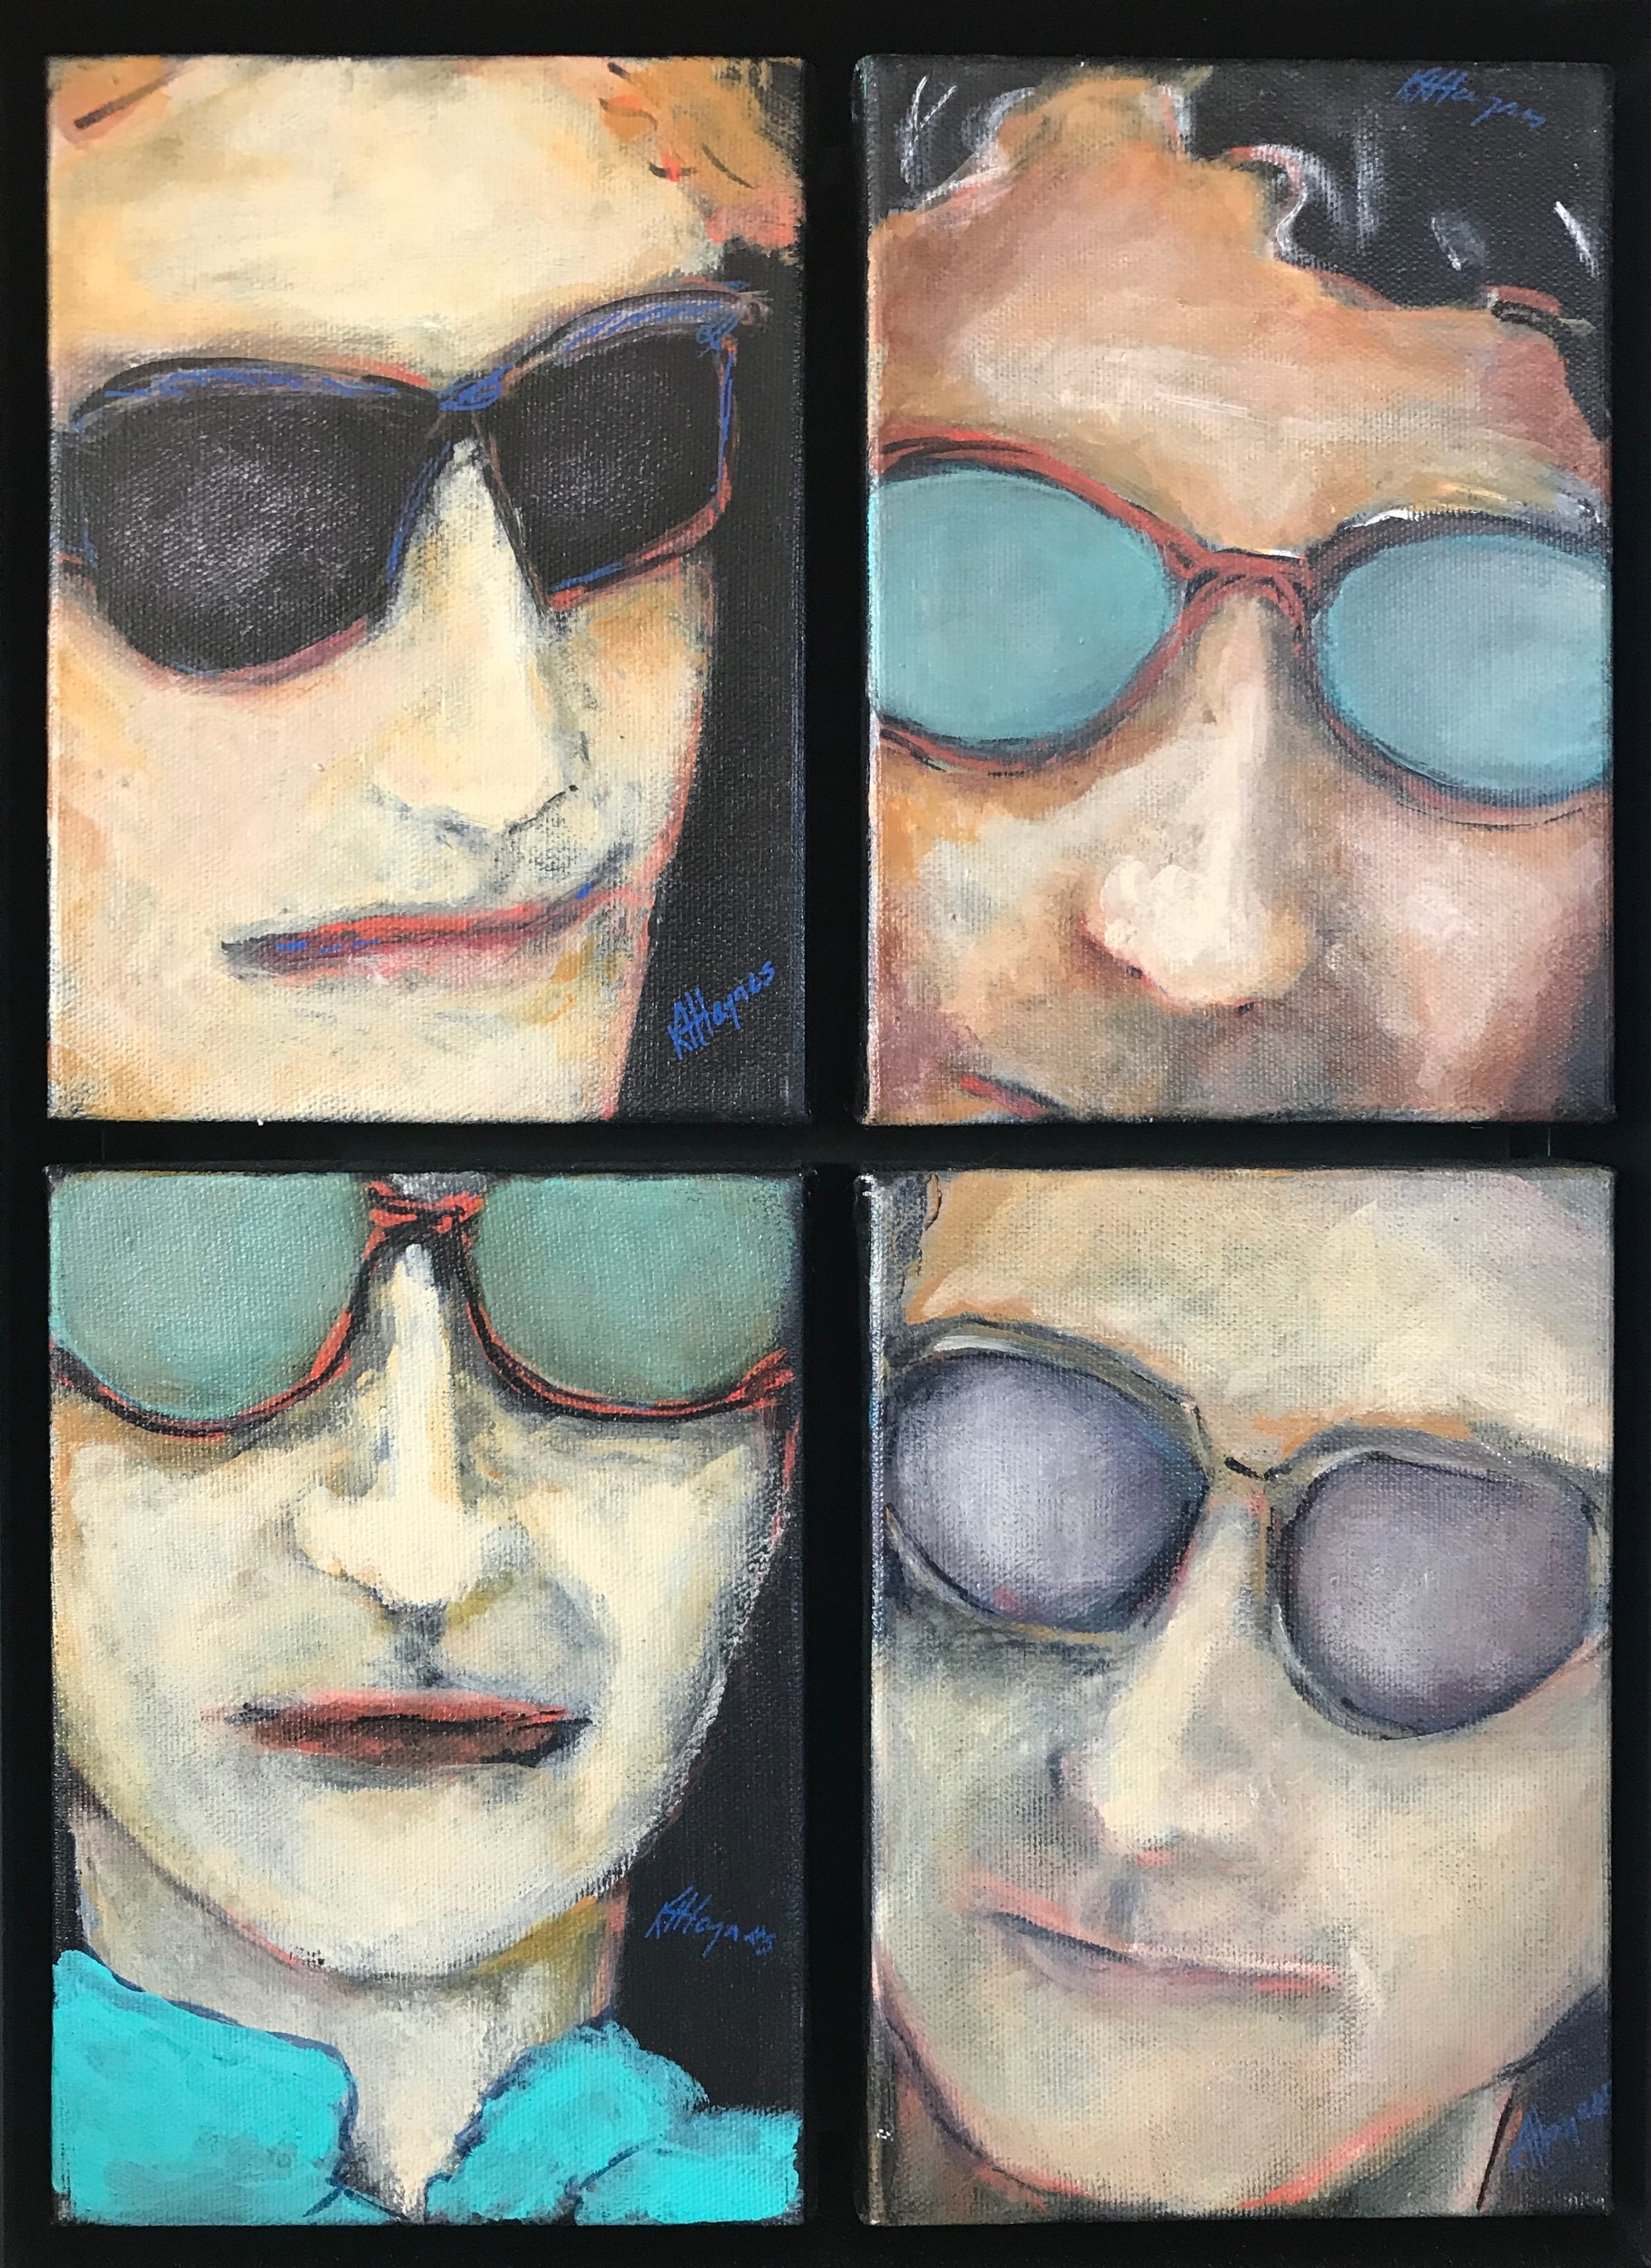 "Sunglass Men 2:   Quadriptych - framed - 11.5 x 15.5"" - acrylic on canvas"